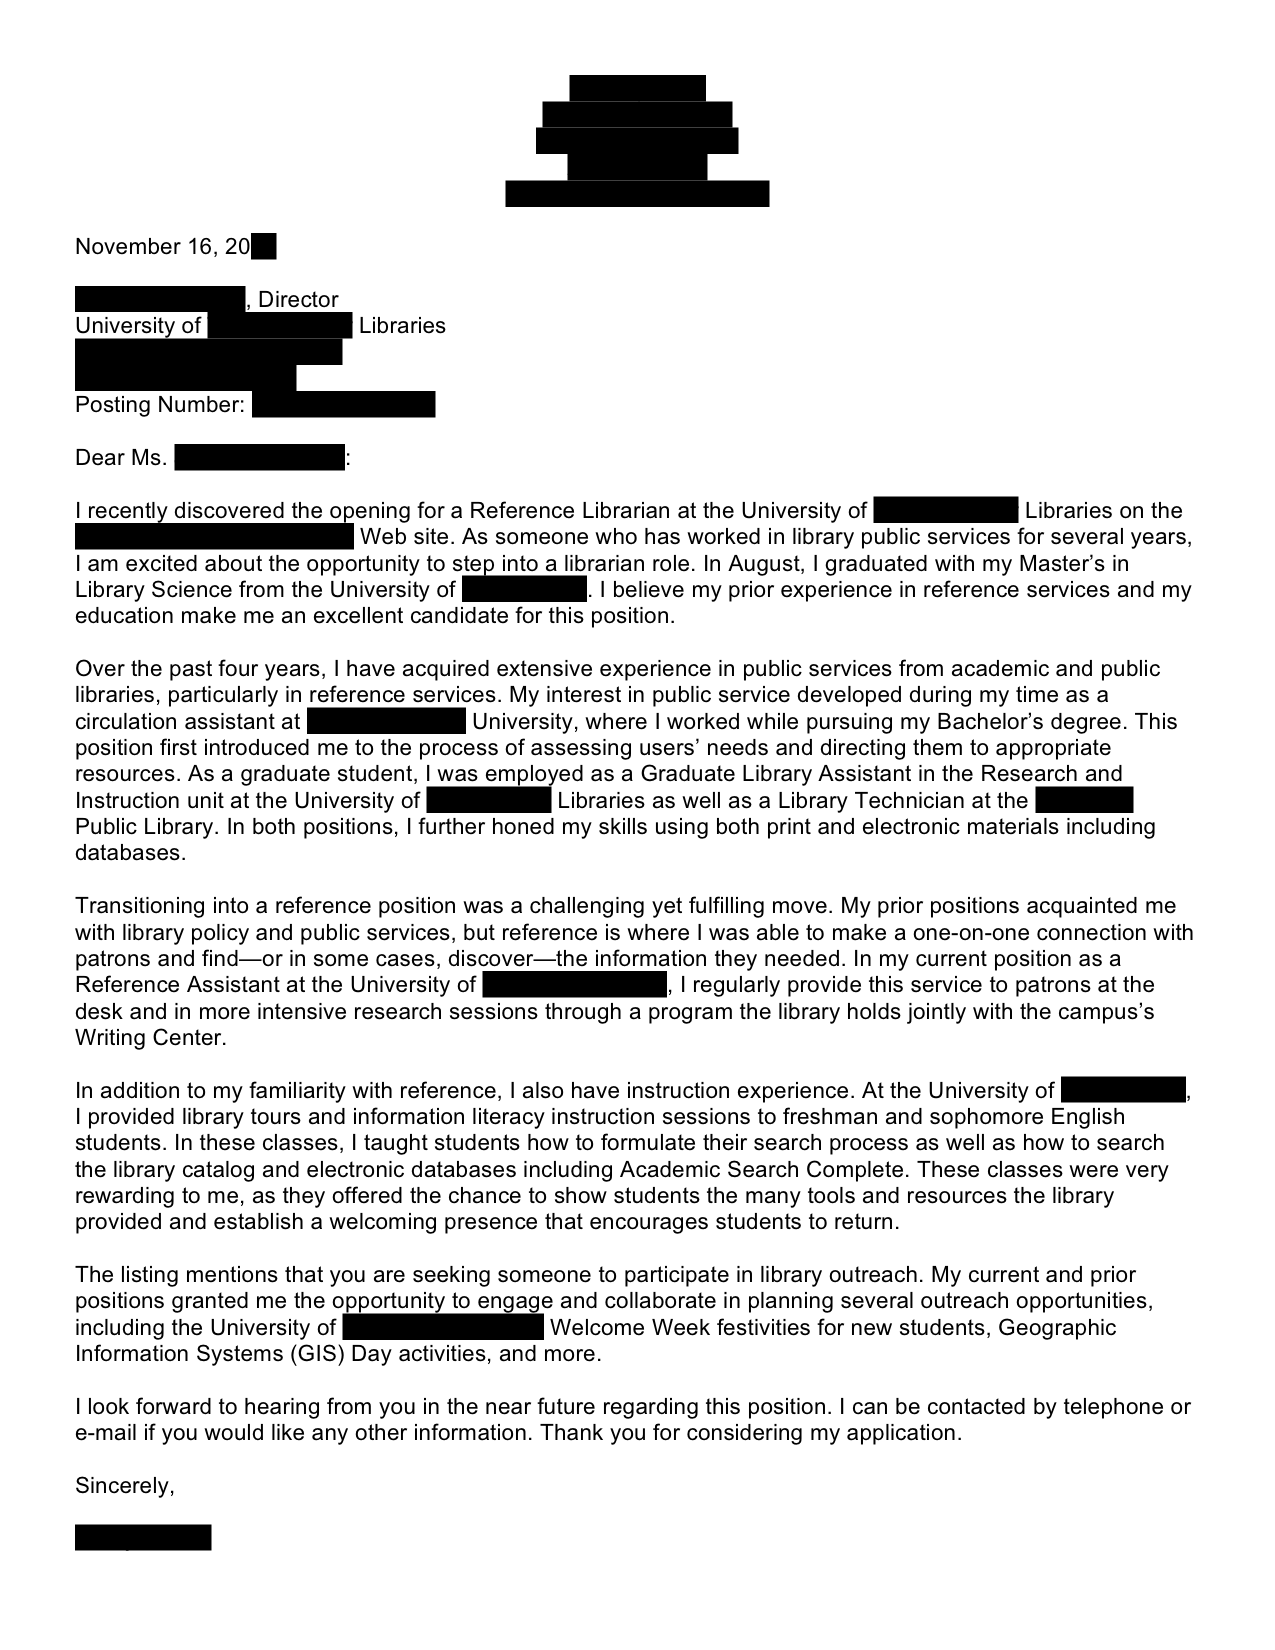 Free Sample Resignation Letter Templates